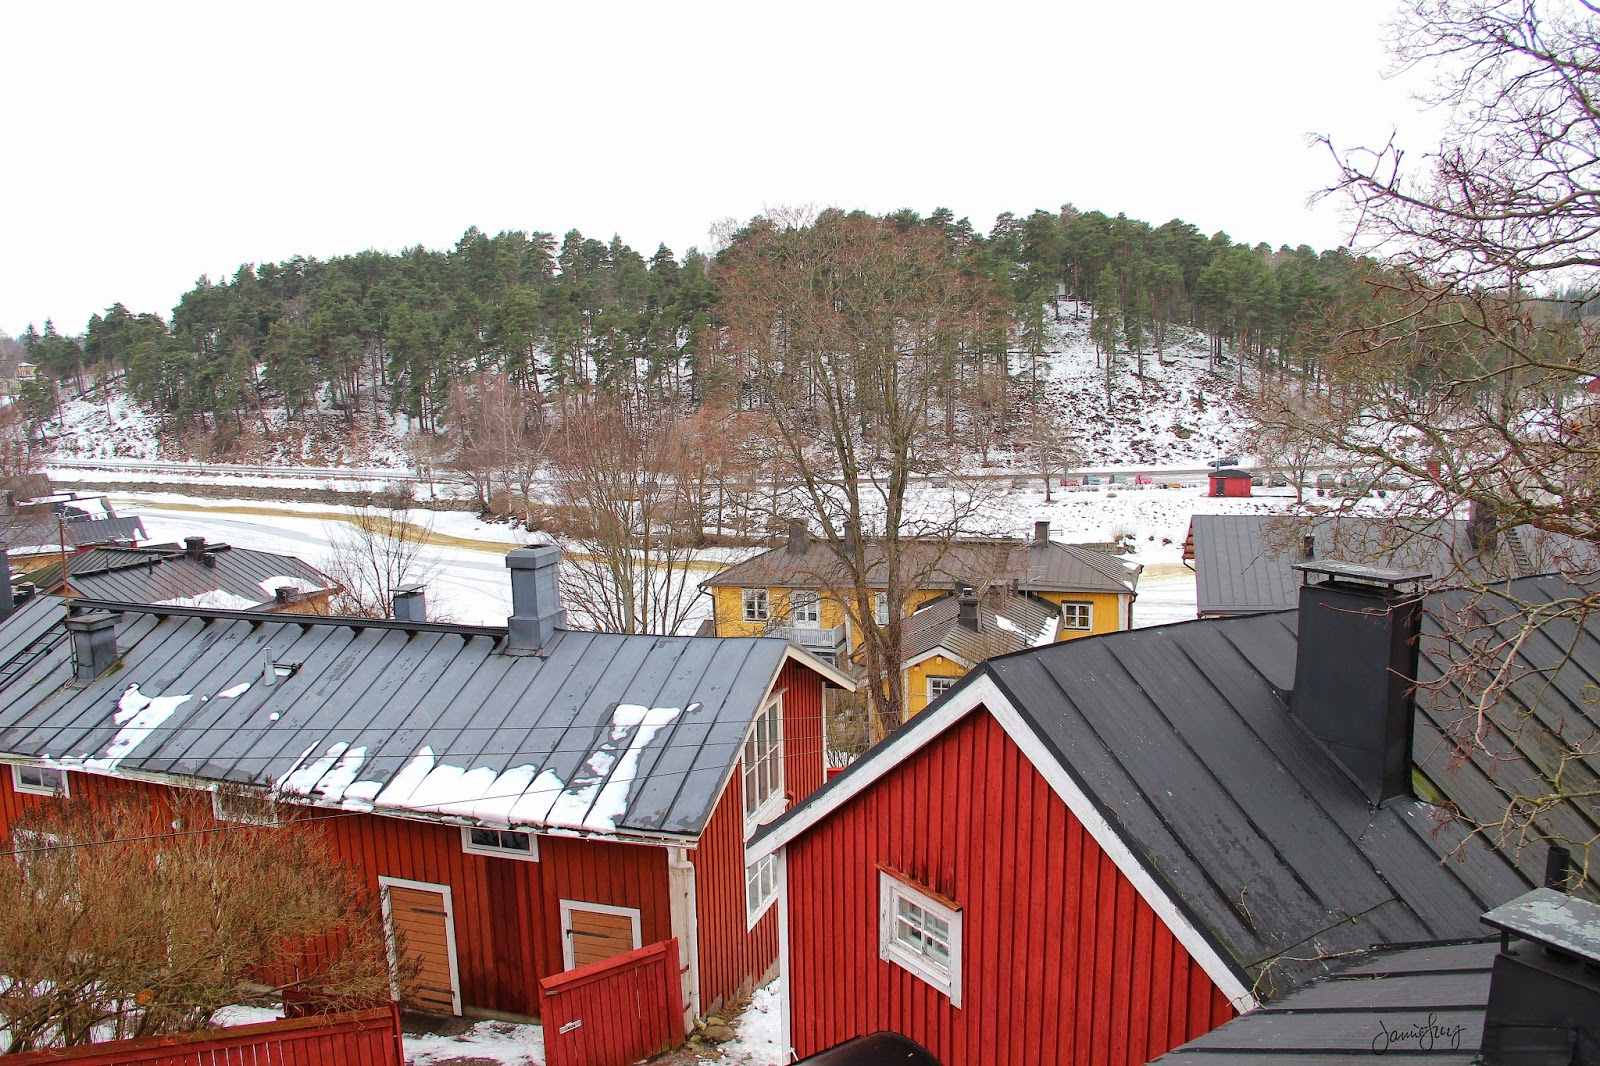 Red Houses in Porvoo, Finland